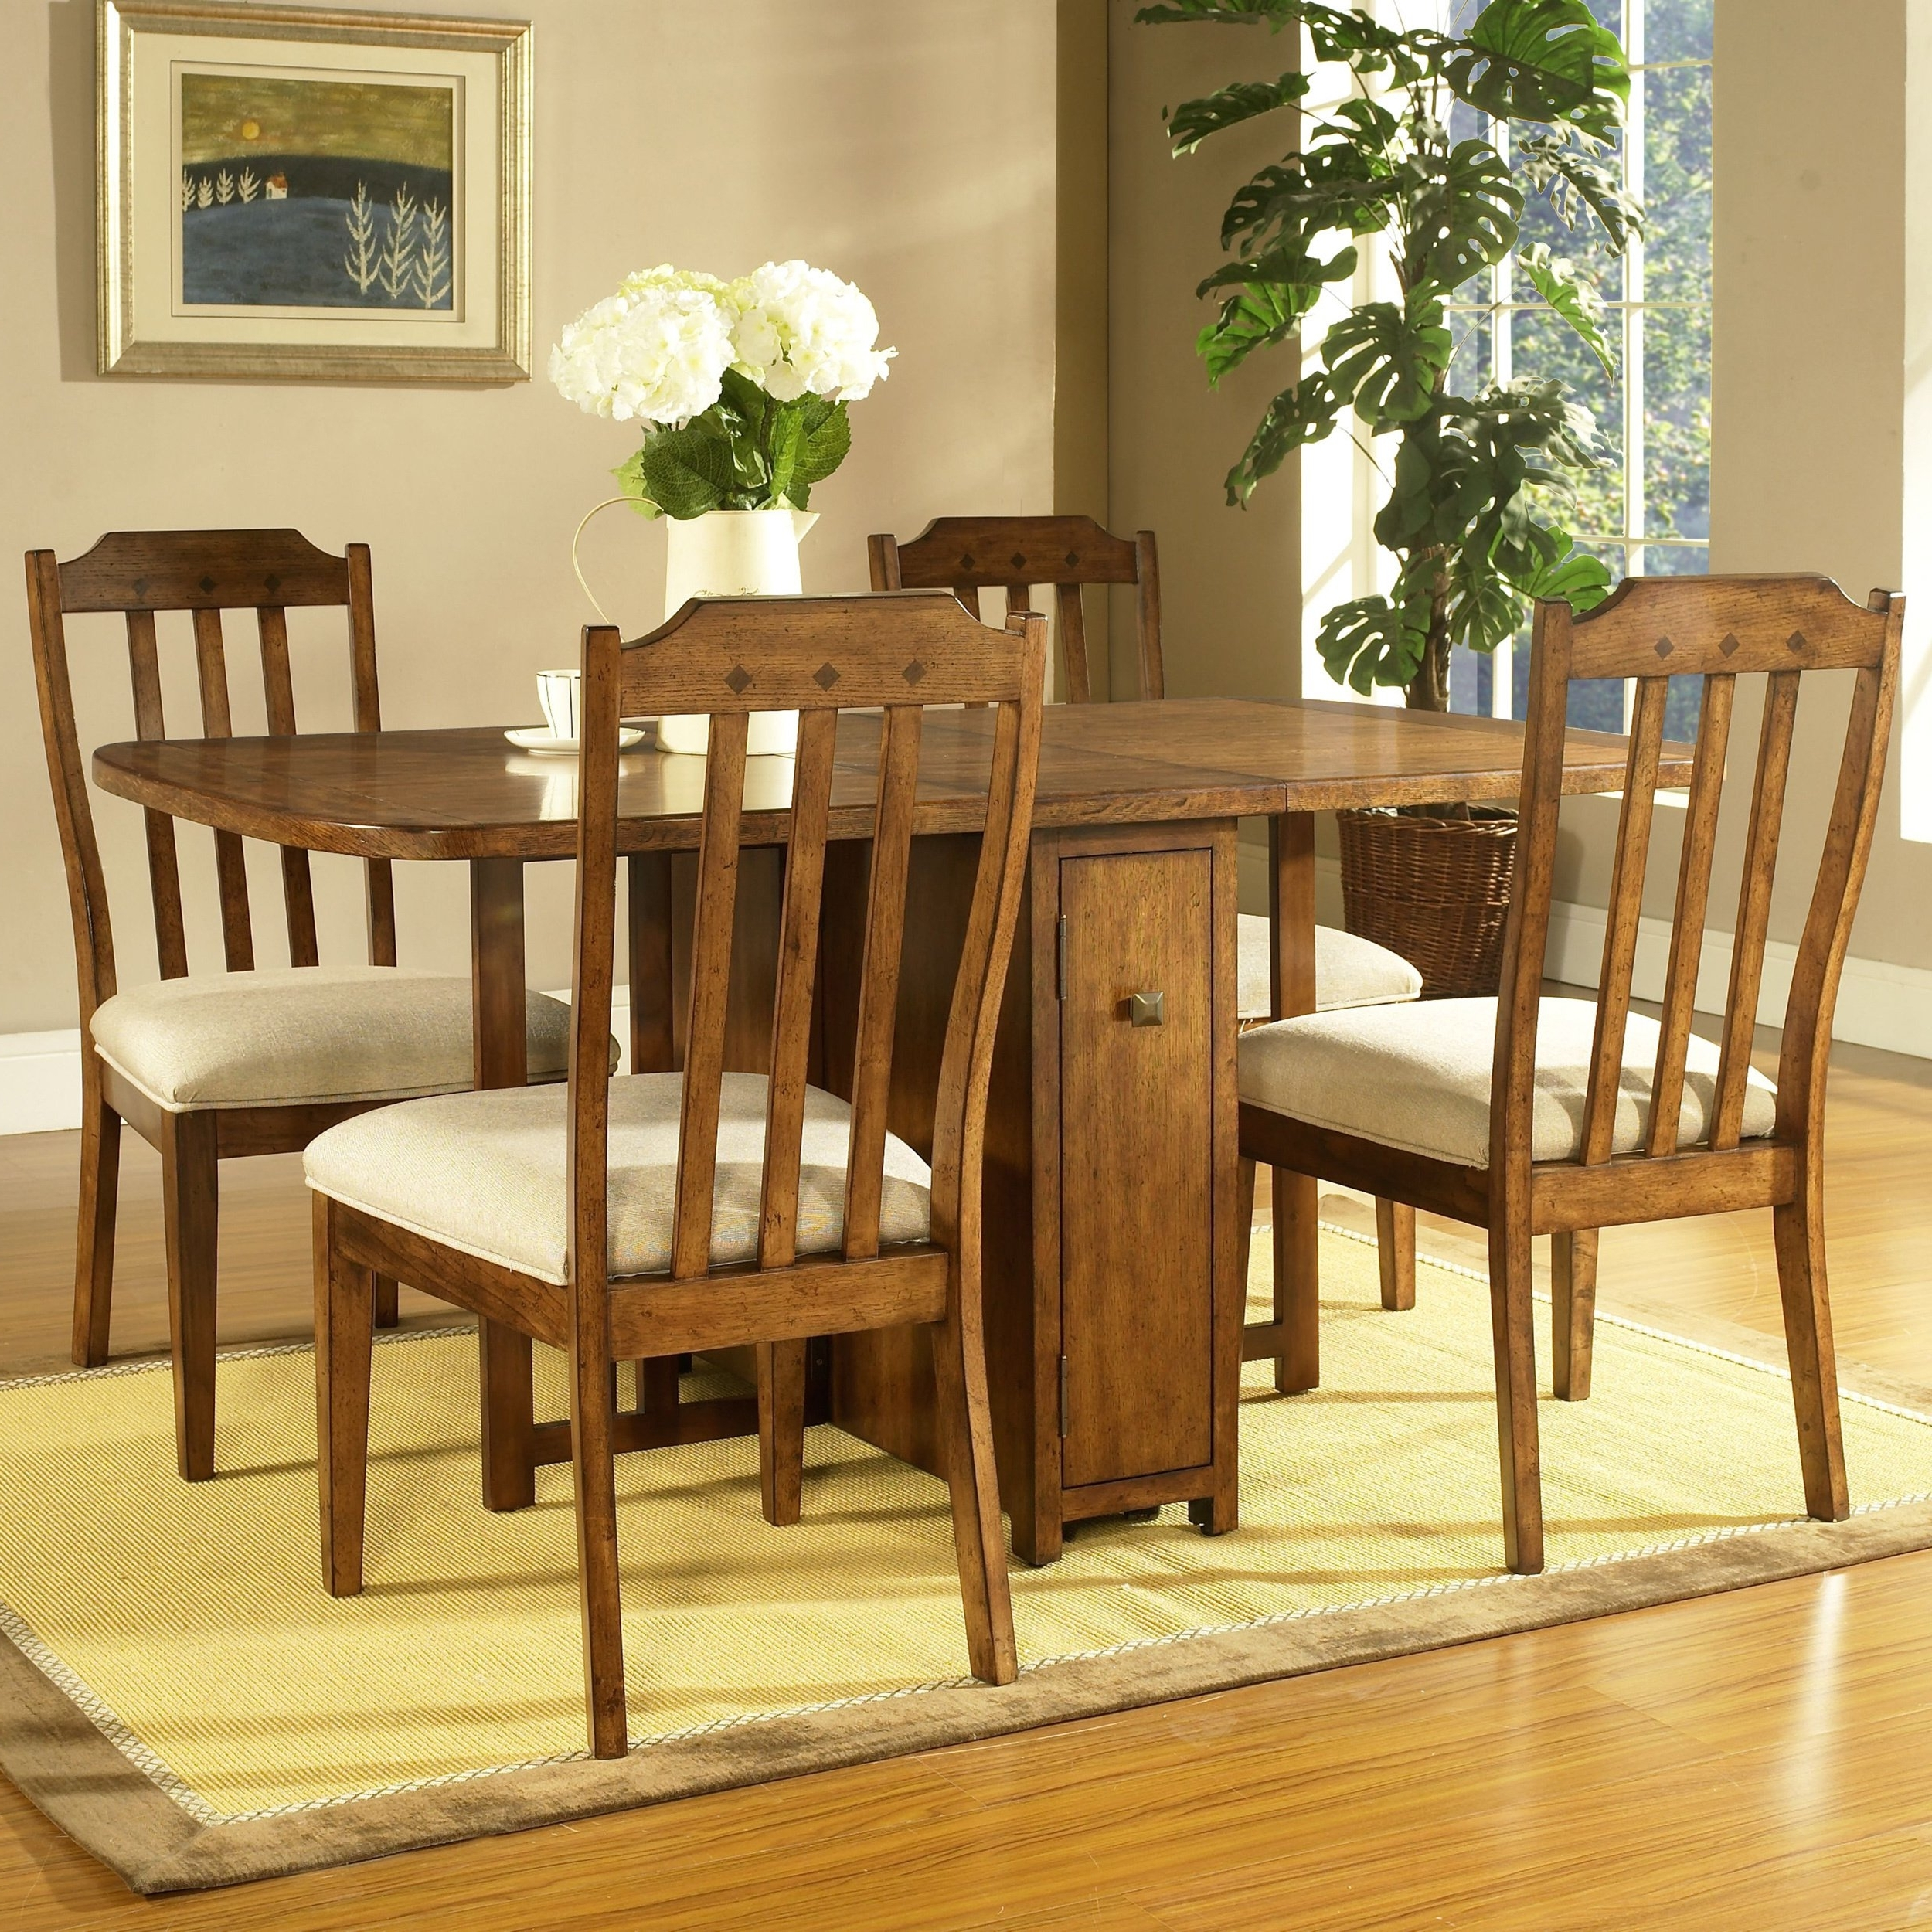 Well Known Shop Somerton Dwelling Craftsman 5 Piece Gate Leg Dining Set – Free Inside Craftsman 7 Piece Rectangle Extension Dining Sets With Arm & Side Chairs (View 22 of 25)